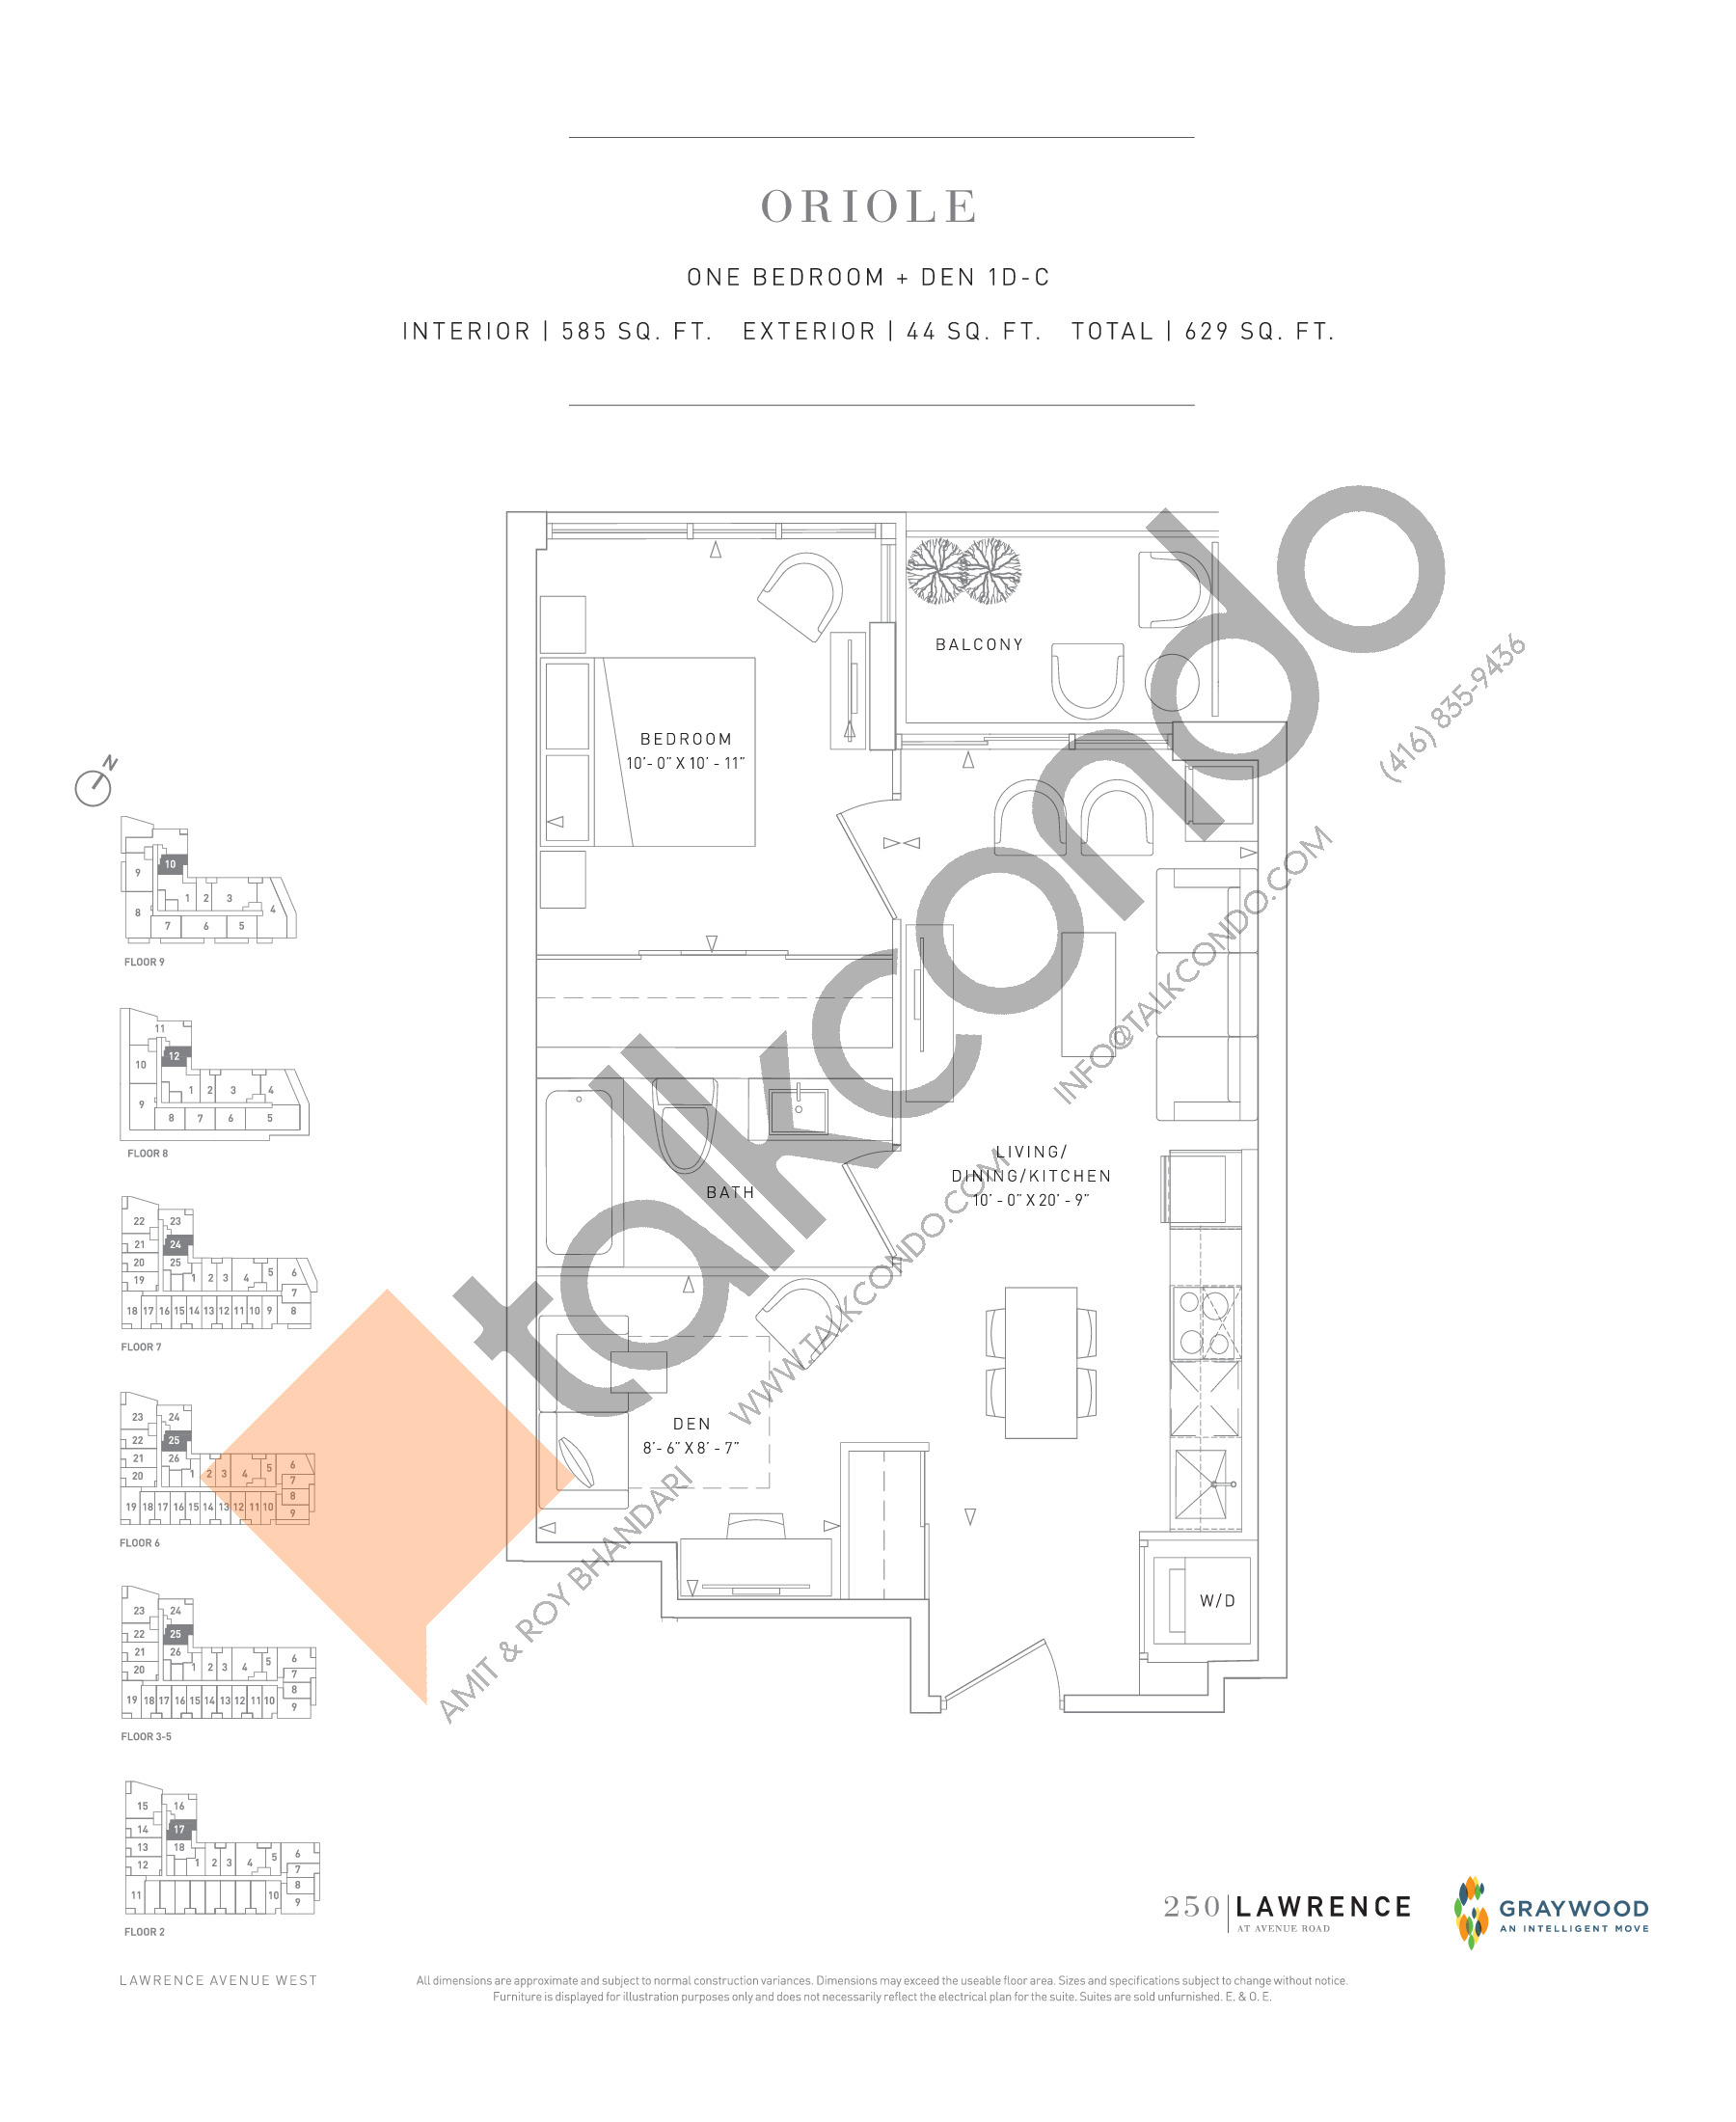 Oriole Floor Plan at 250 Lawrence Avenue West Condos - 585 sq.ft